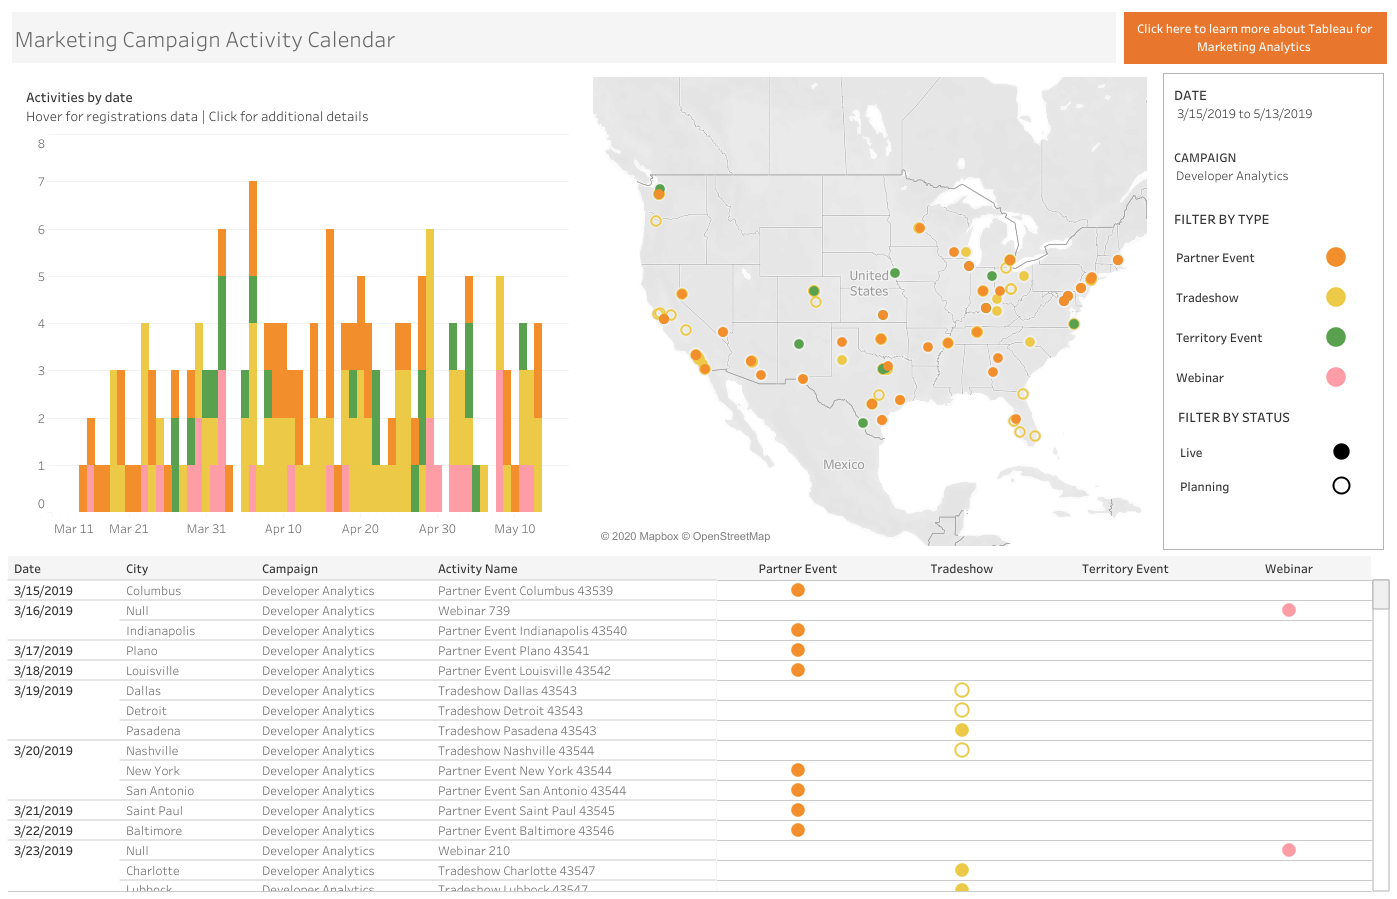 Tableau visualization with marketing campaign data showing data by territory on a map and by date with a vertical bar chart